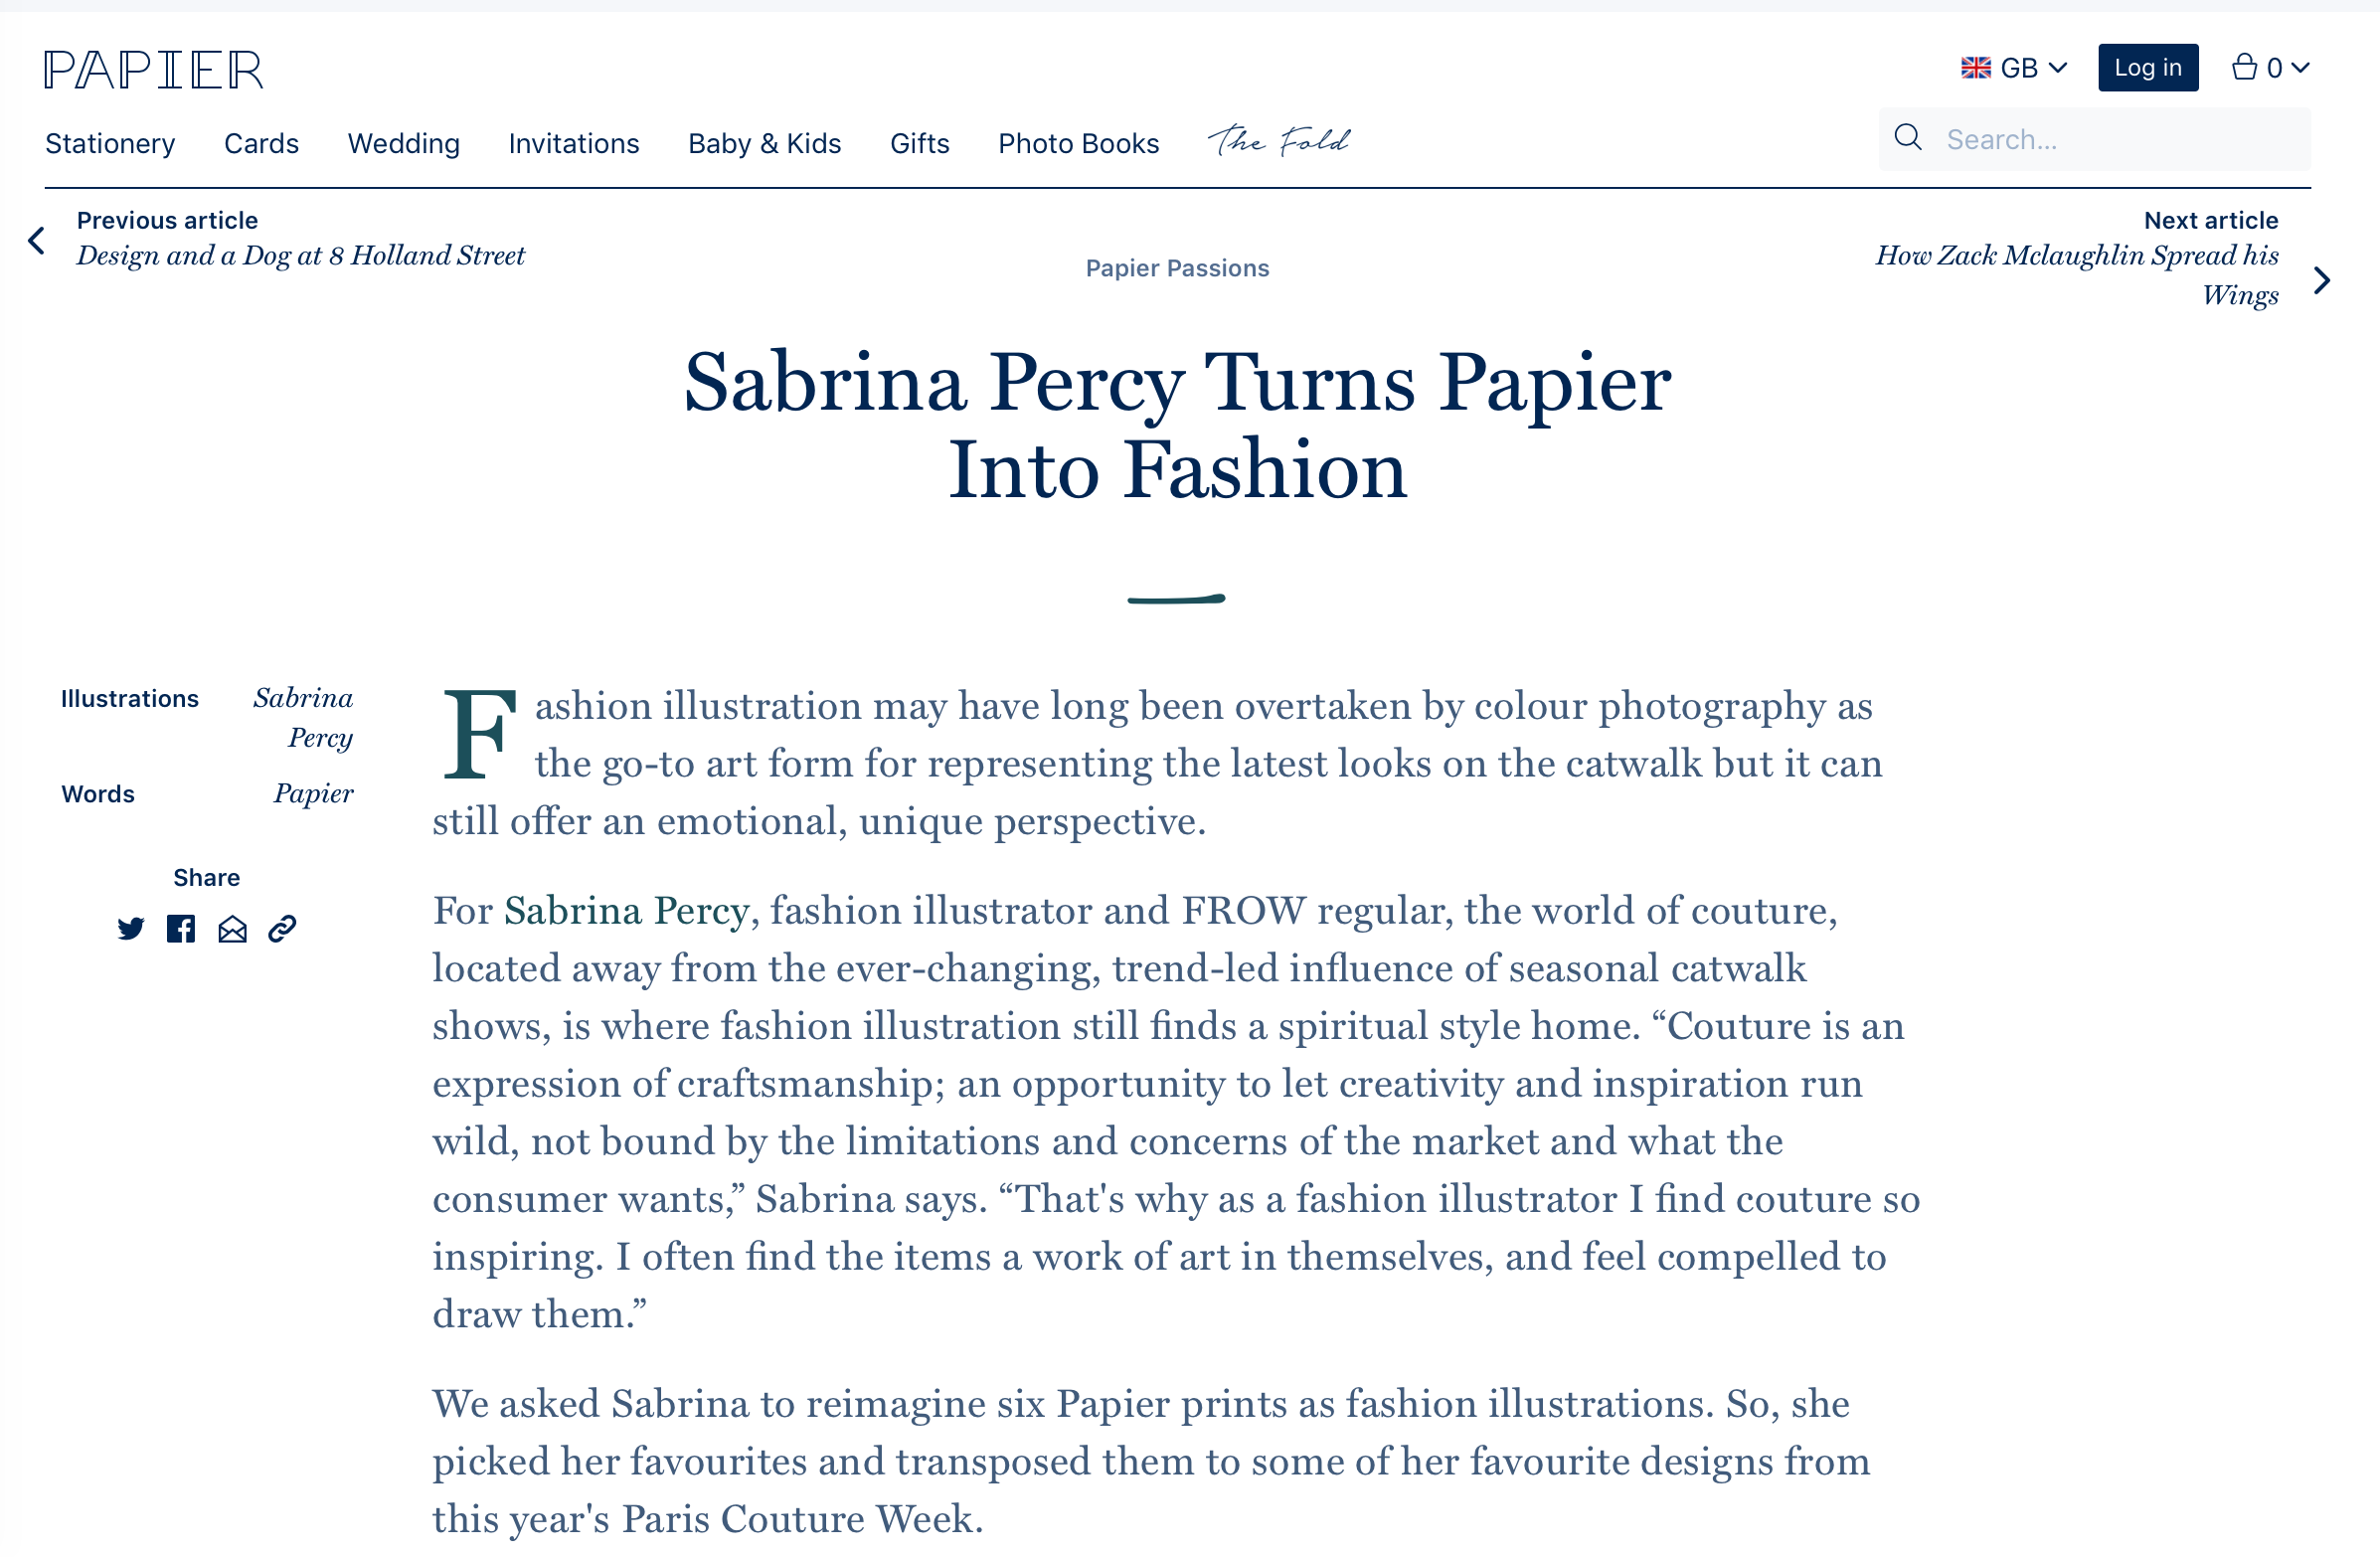 Sabrina Percy Collab with Papier